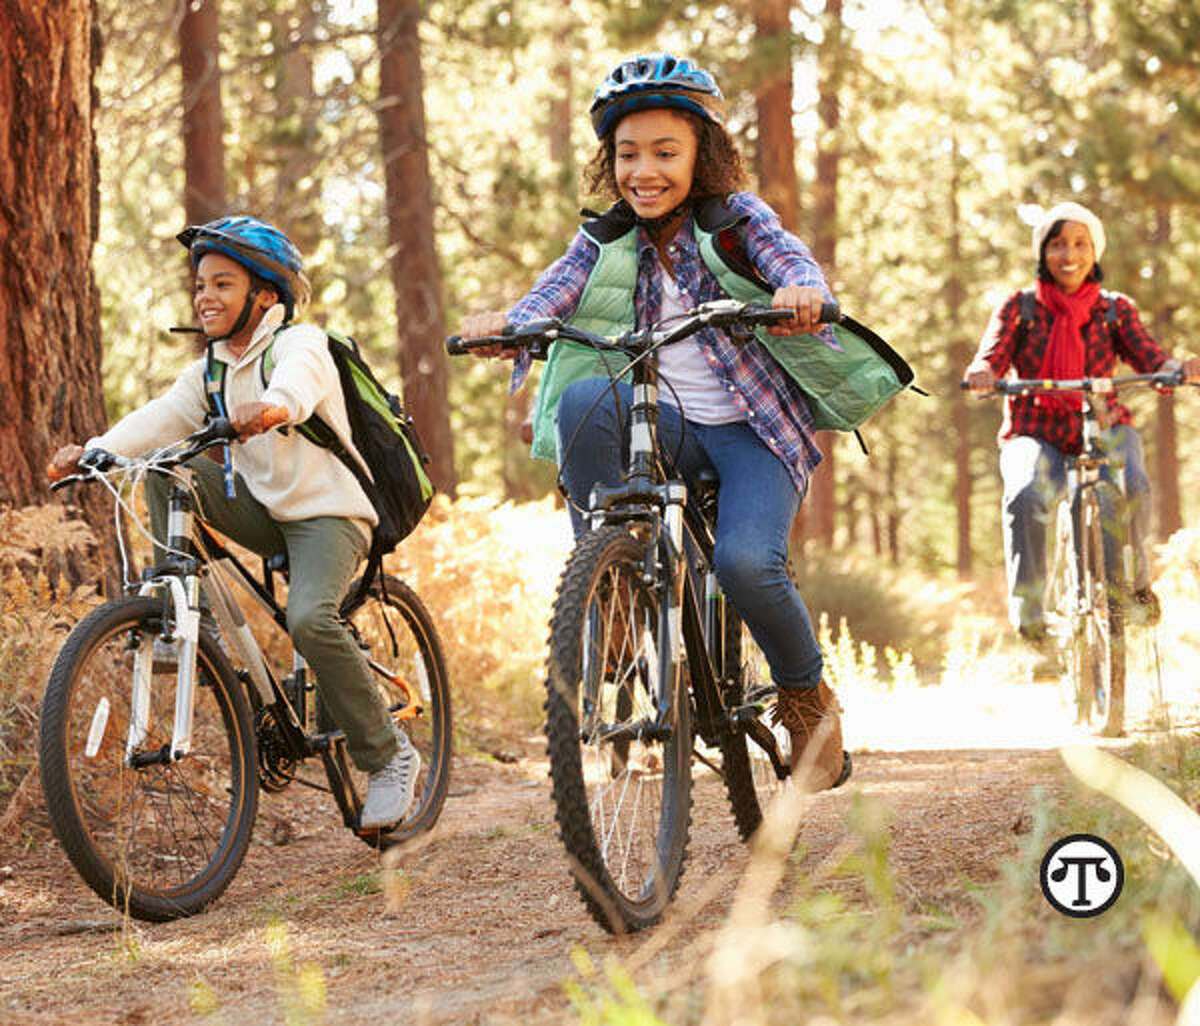 Taking your kids out for a bike ride can be a great way to spend quality time together. Just be sure they're properly protected. (NAPS)